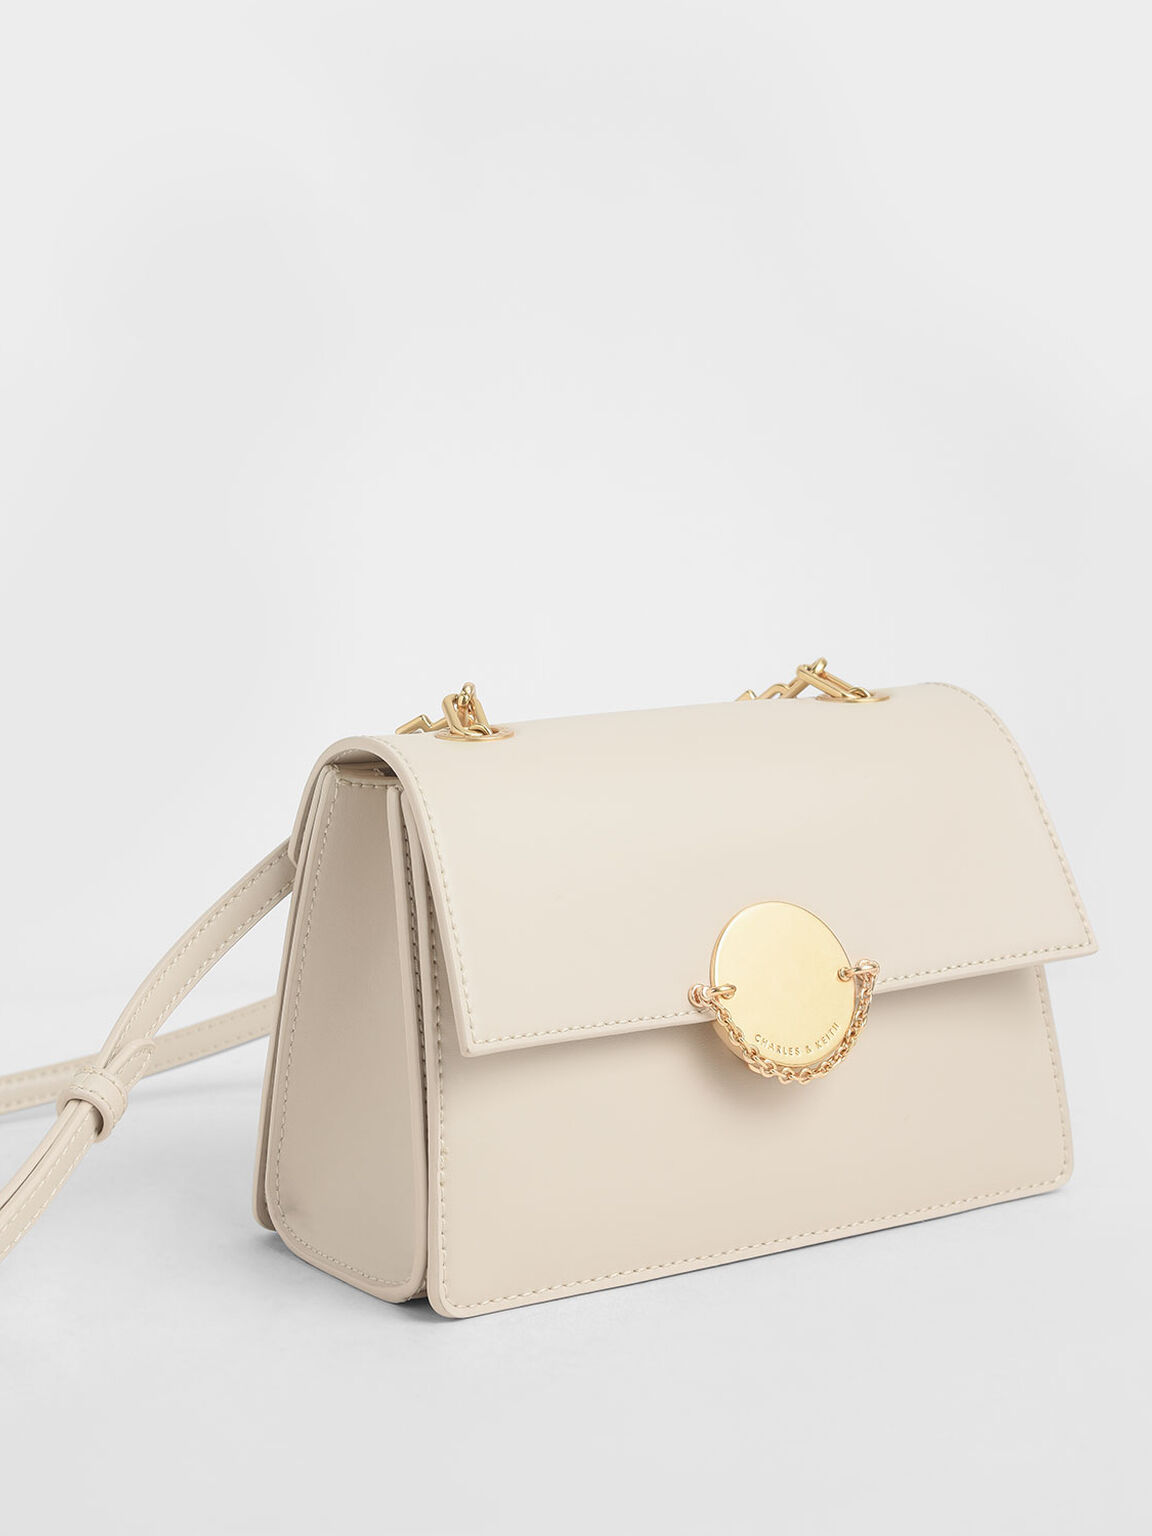 Chain Link Crossbody Bag, Cream, hi-res